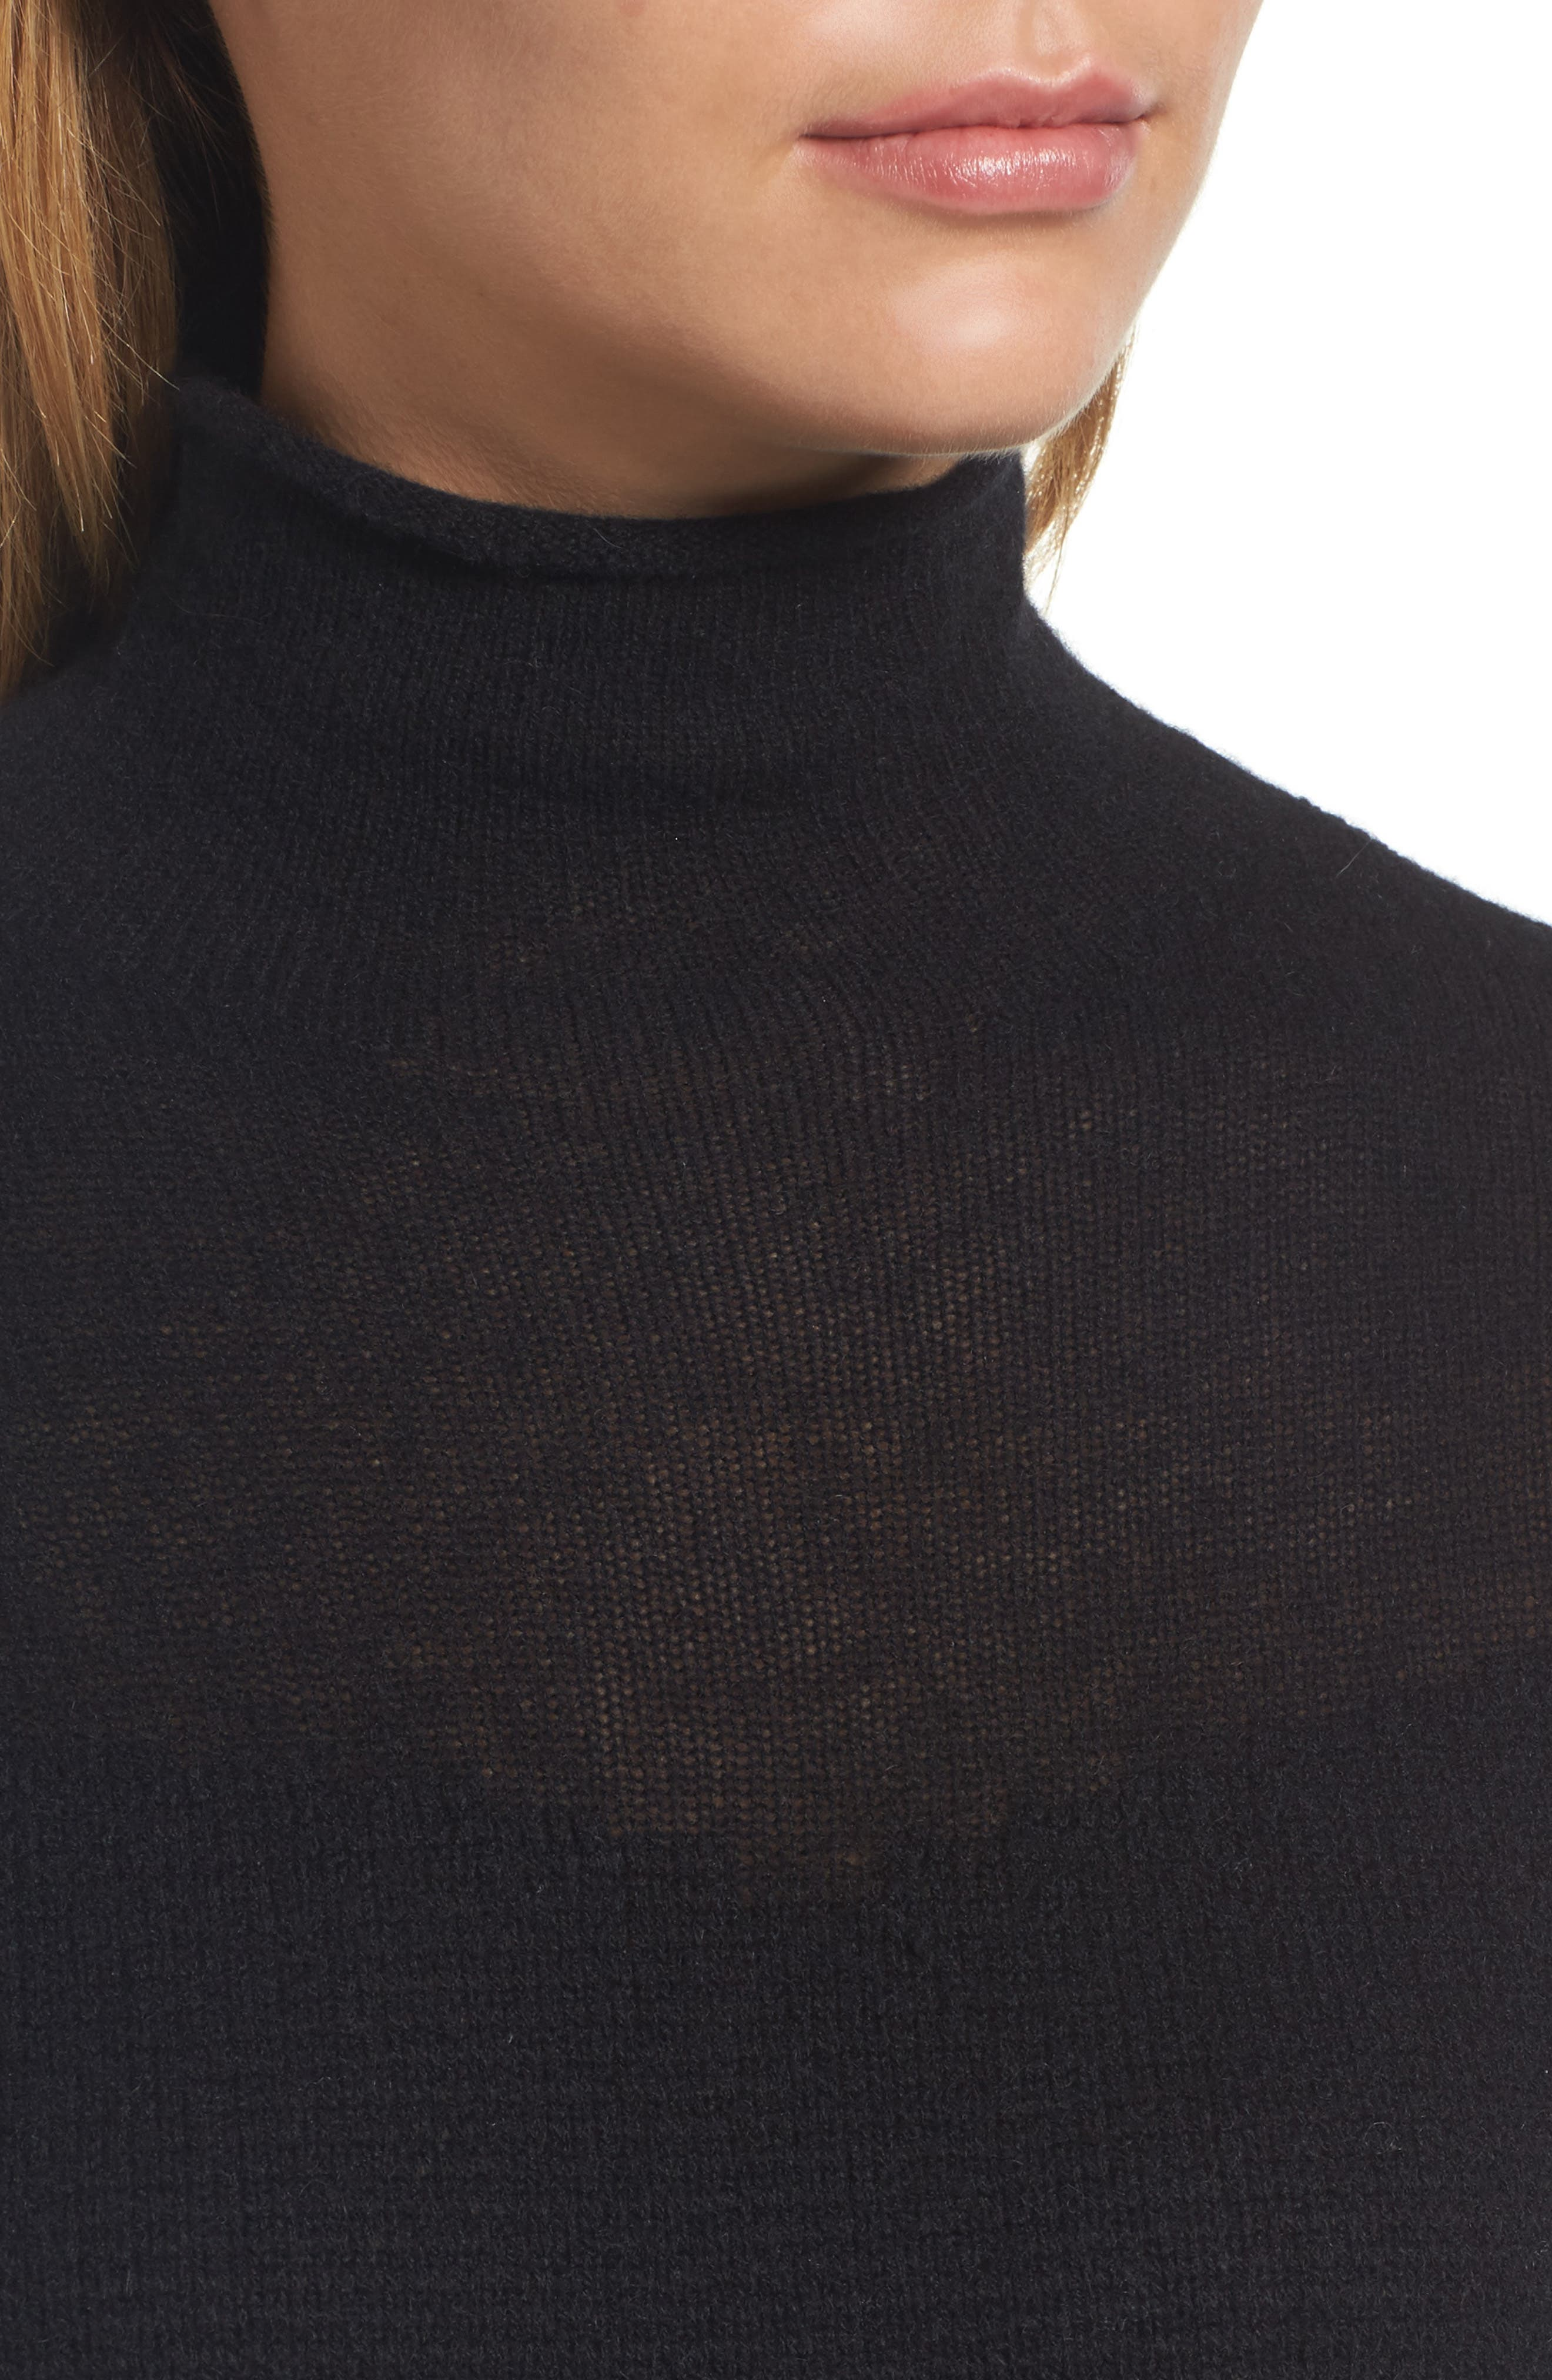 Sheer Yoke Cashmere Sweater,                             Alternate thumbnail 4, color,                             Black